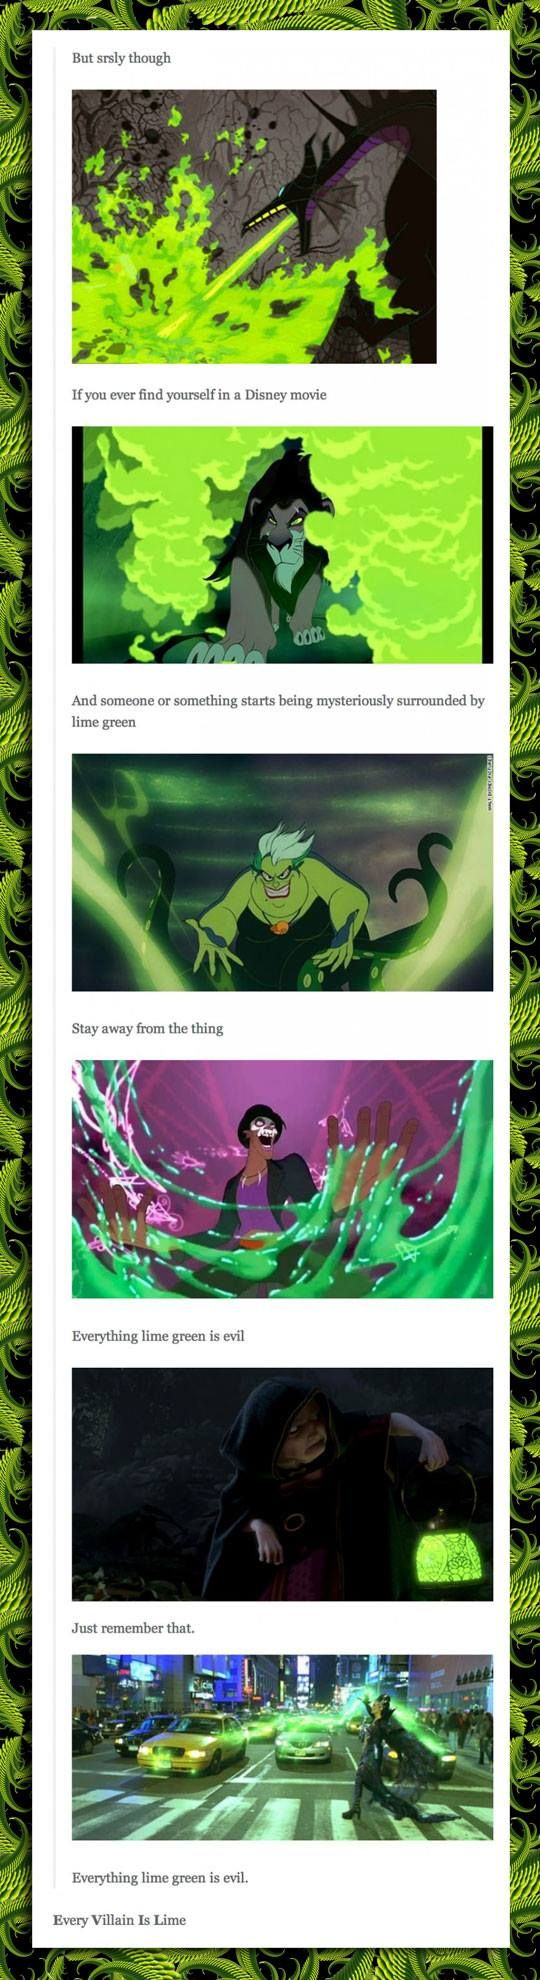 Disney villains and green